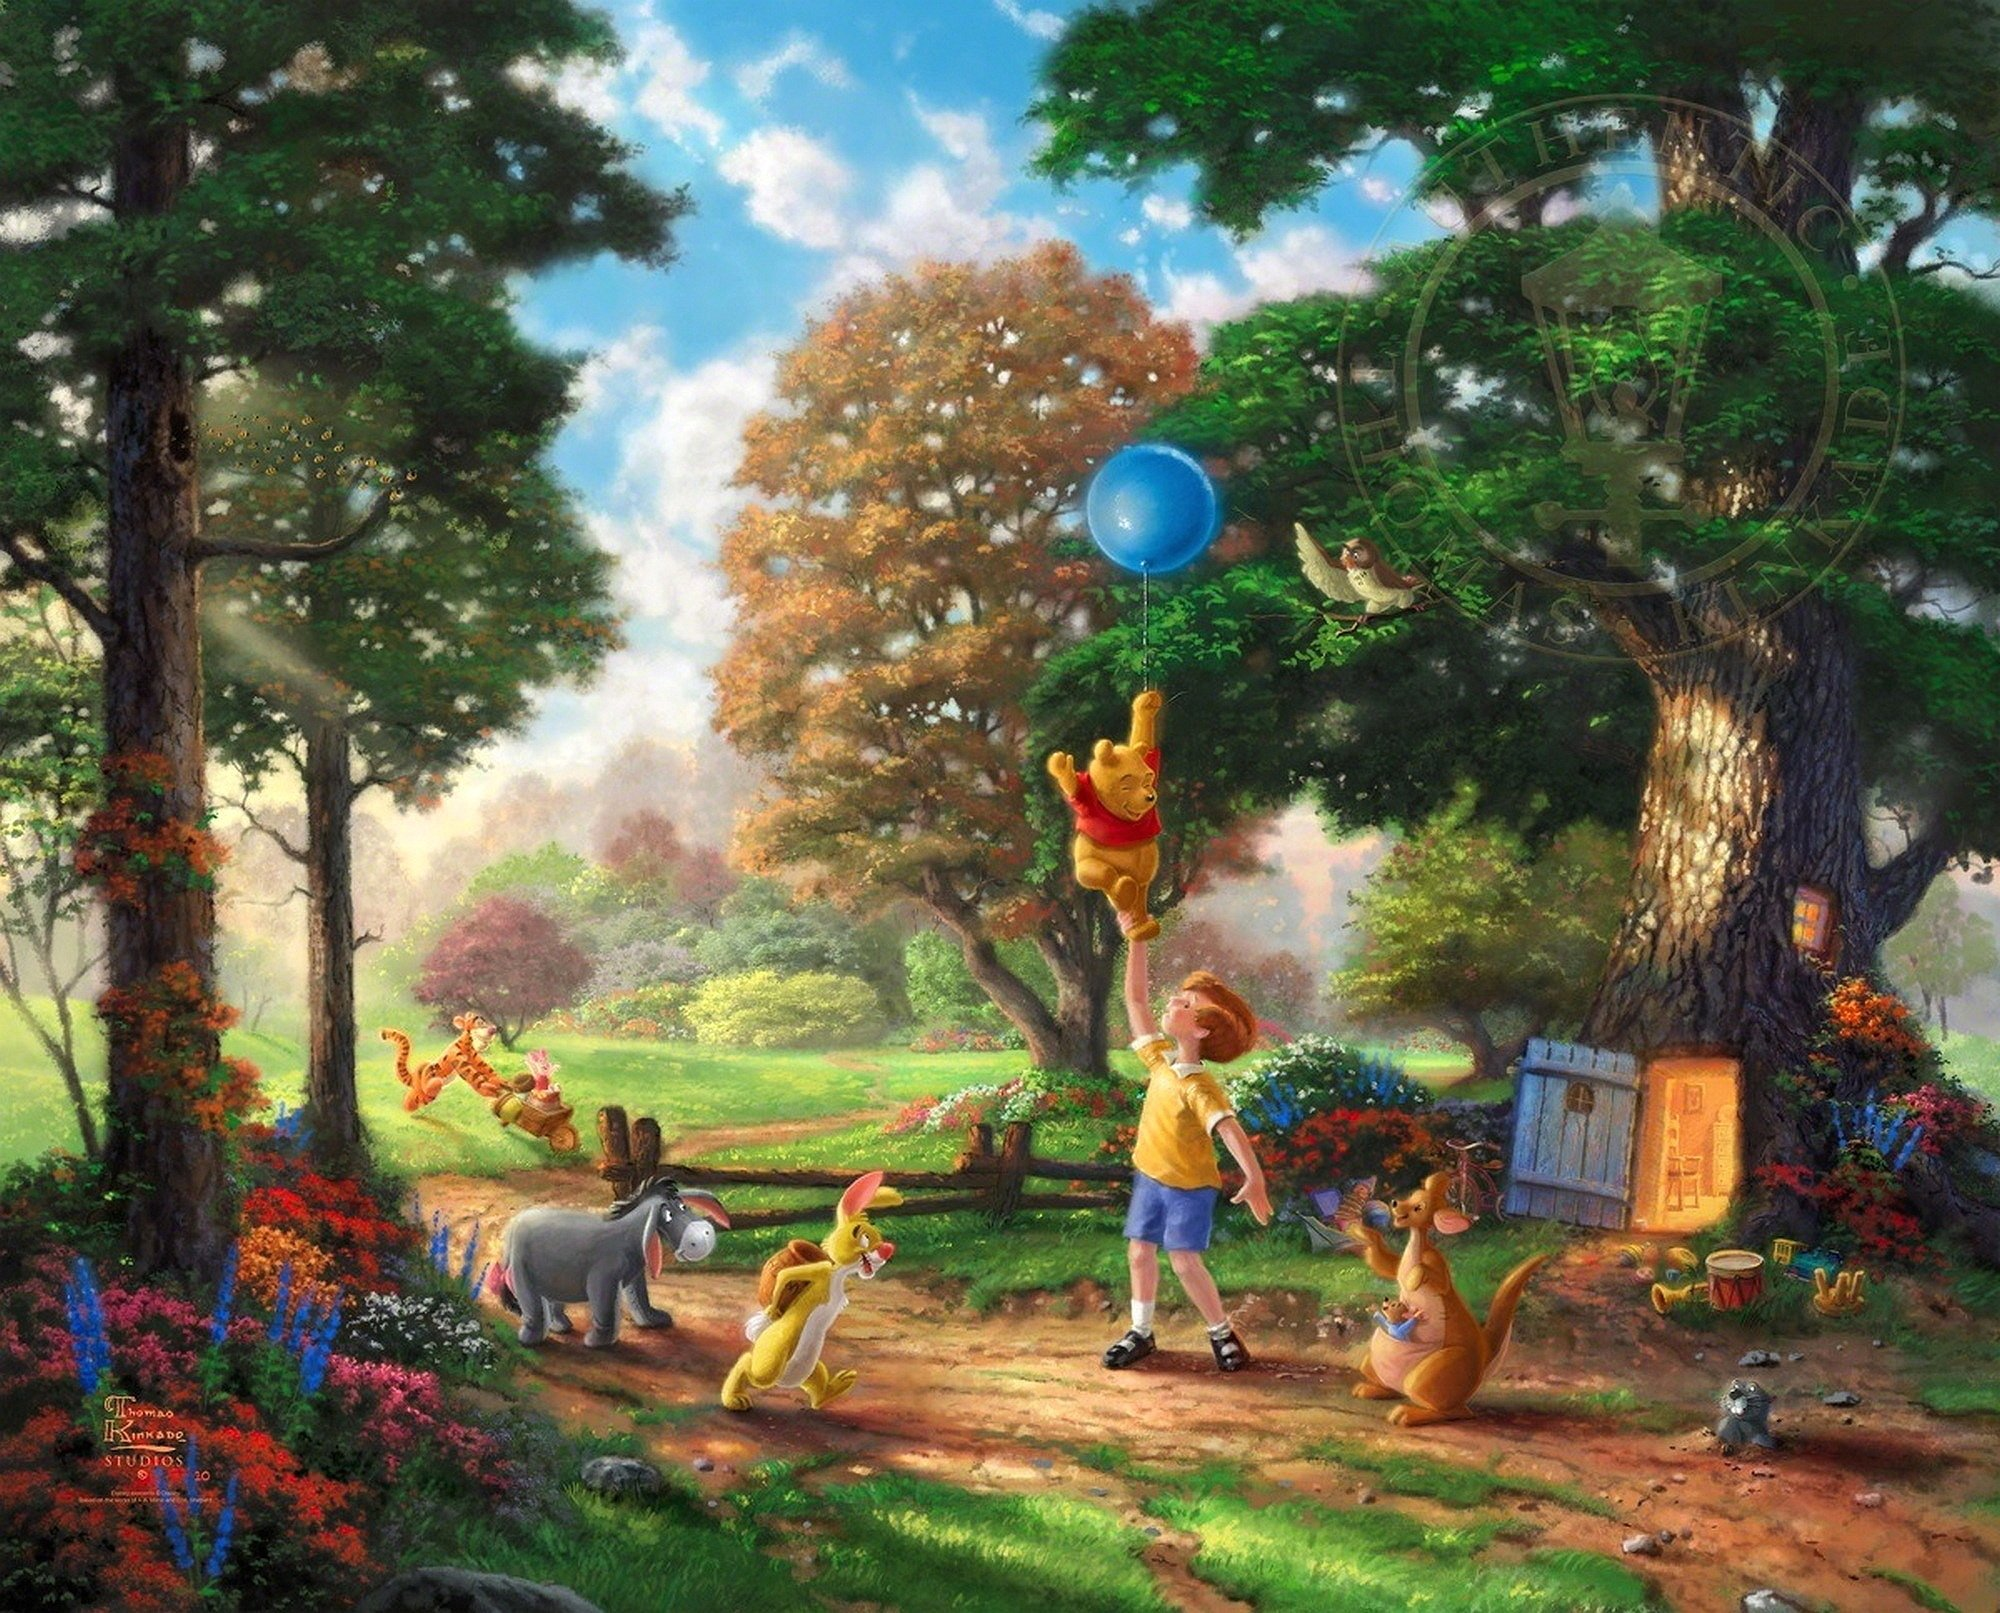 Winnie pooh thomas kinkade family disney fantasy wallpaper | 2000x1613 ...